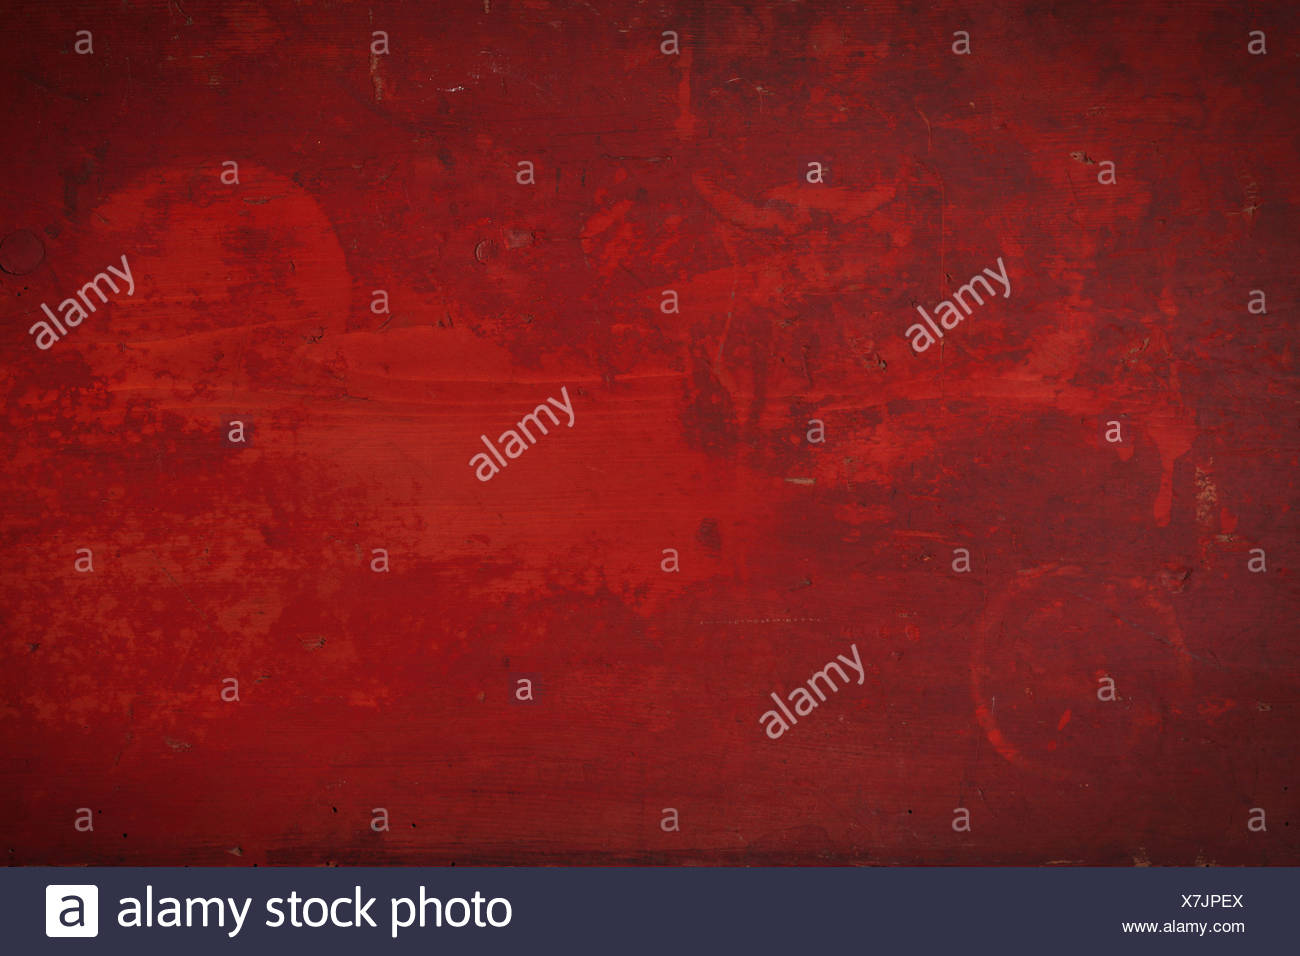 textured red grunge background. - Stock Image